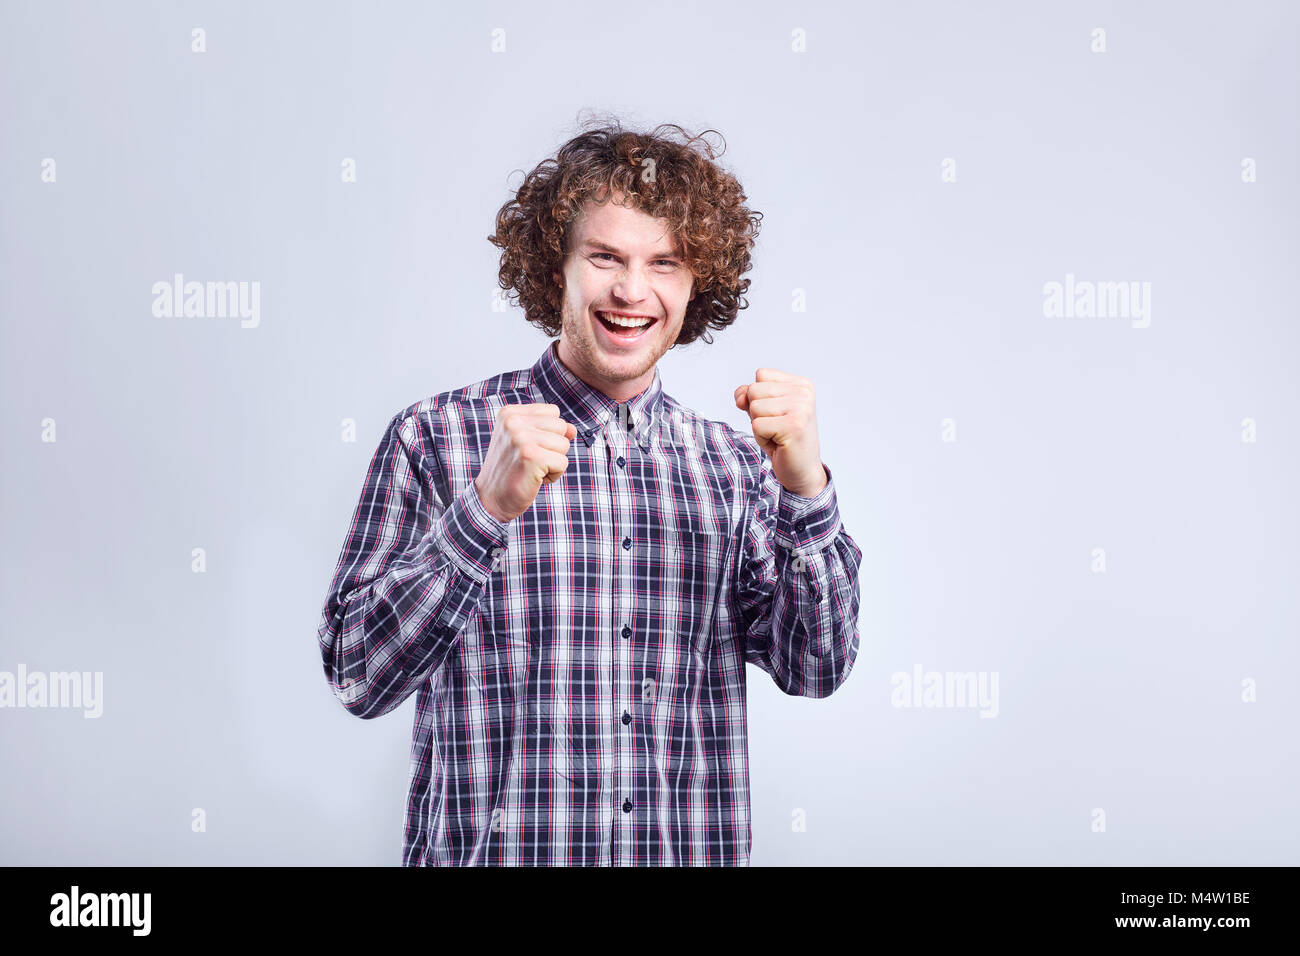 Curly young man surprised, joyful emotion on his face. - Stock Image